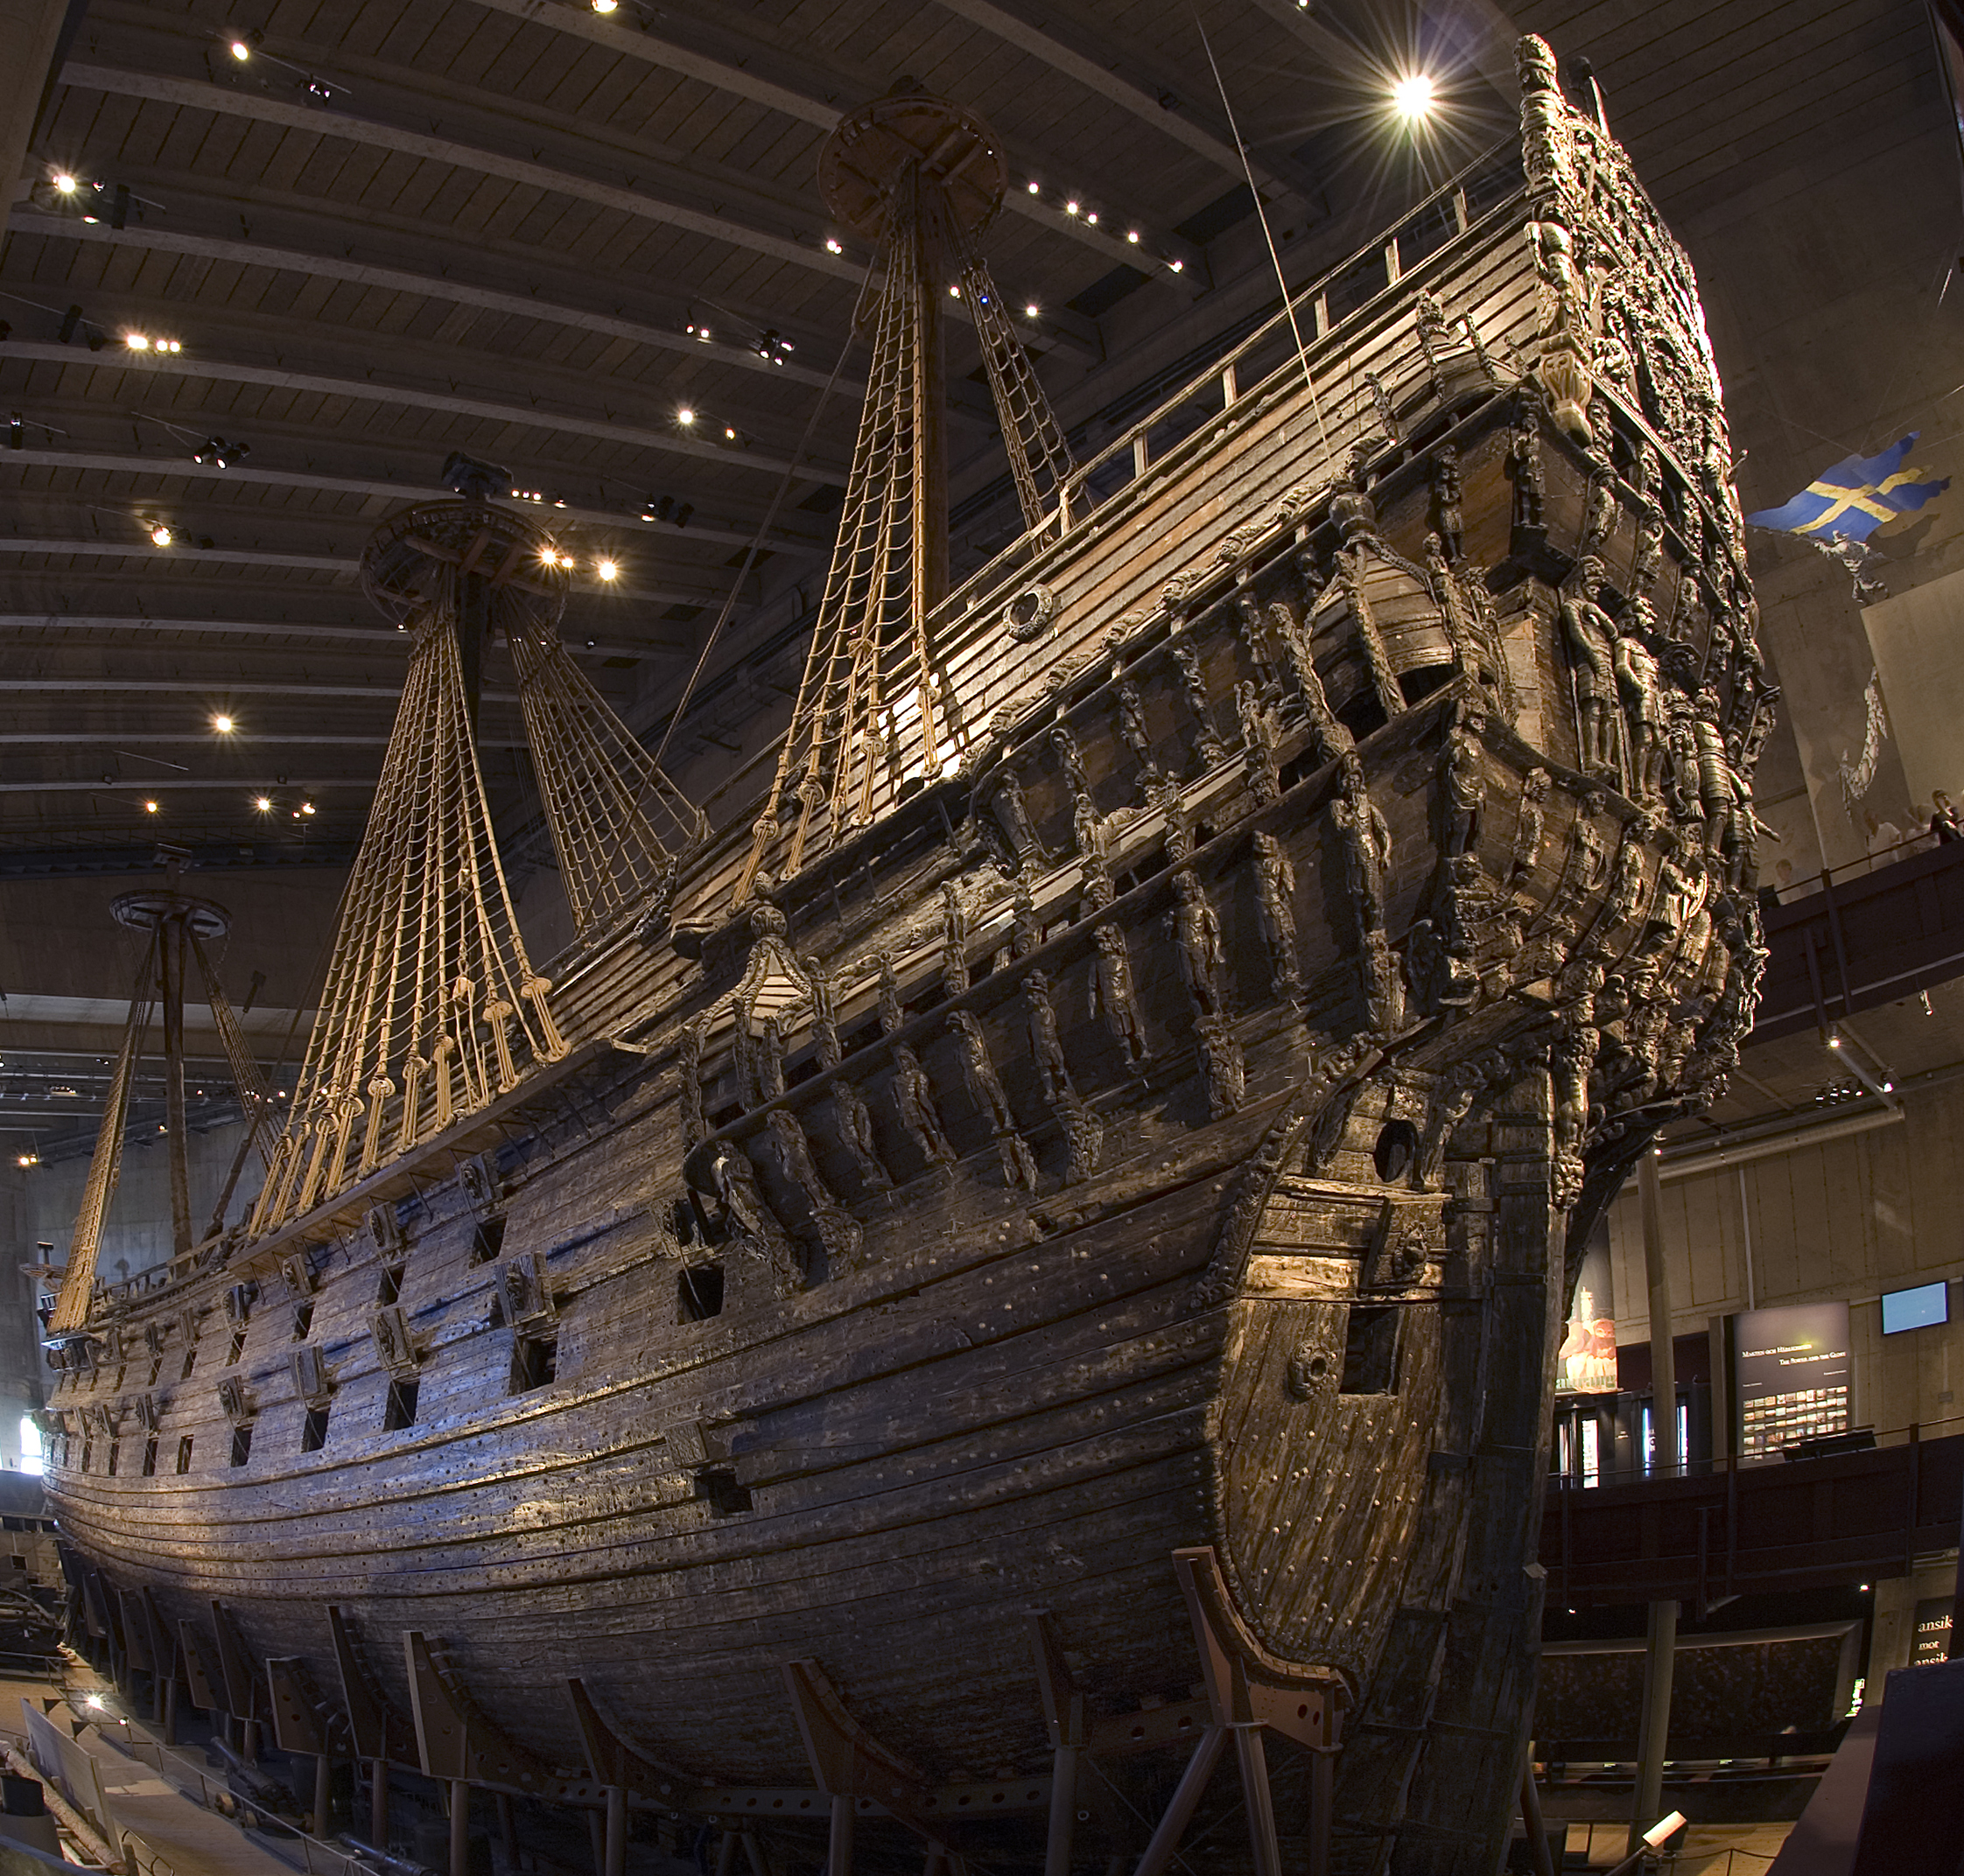 The 400-year-old warship in Stockholm